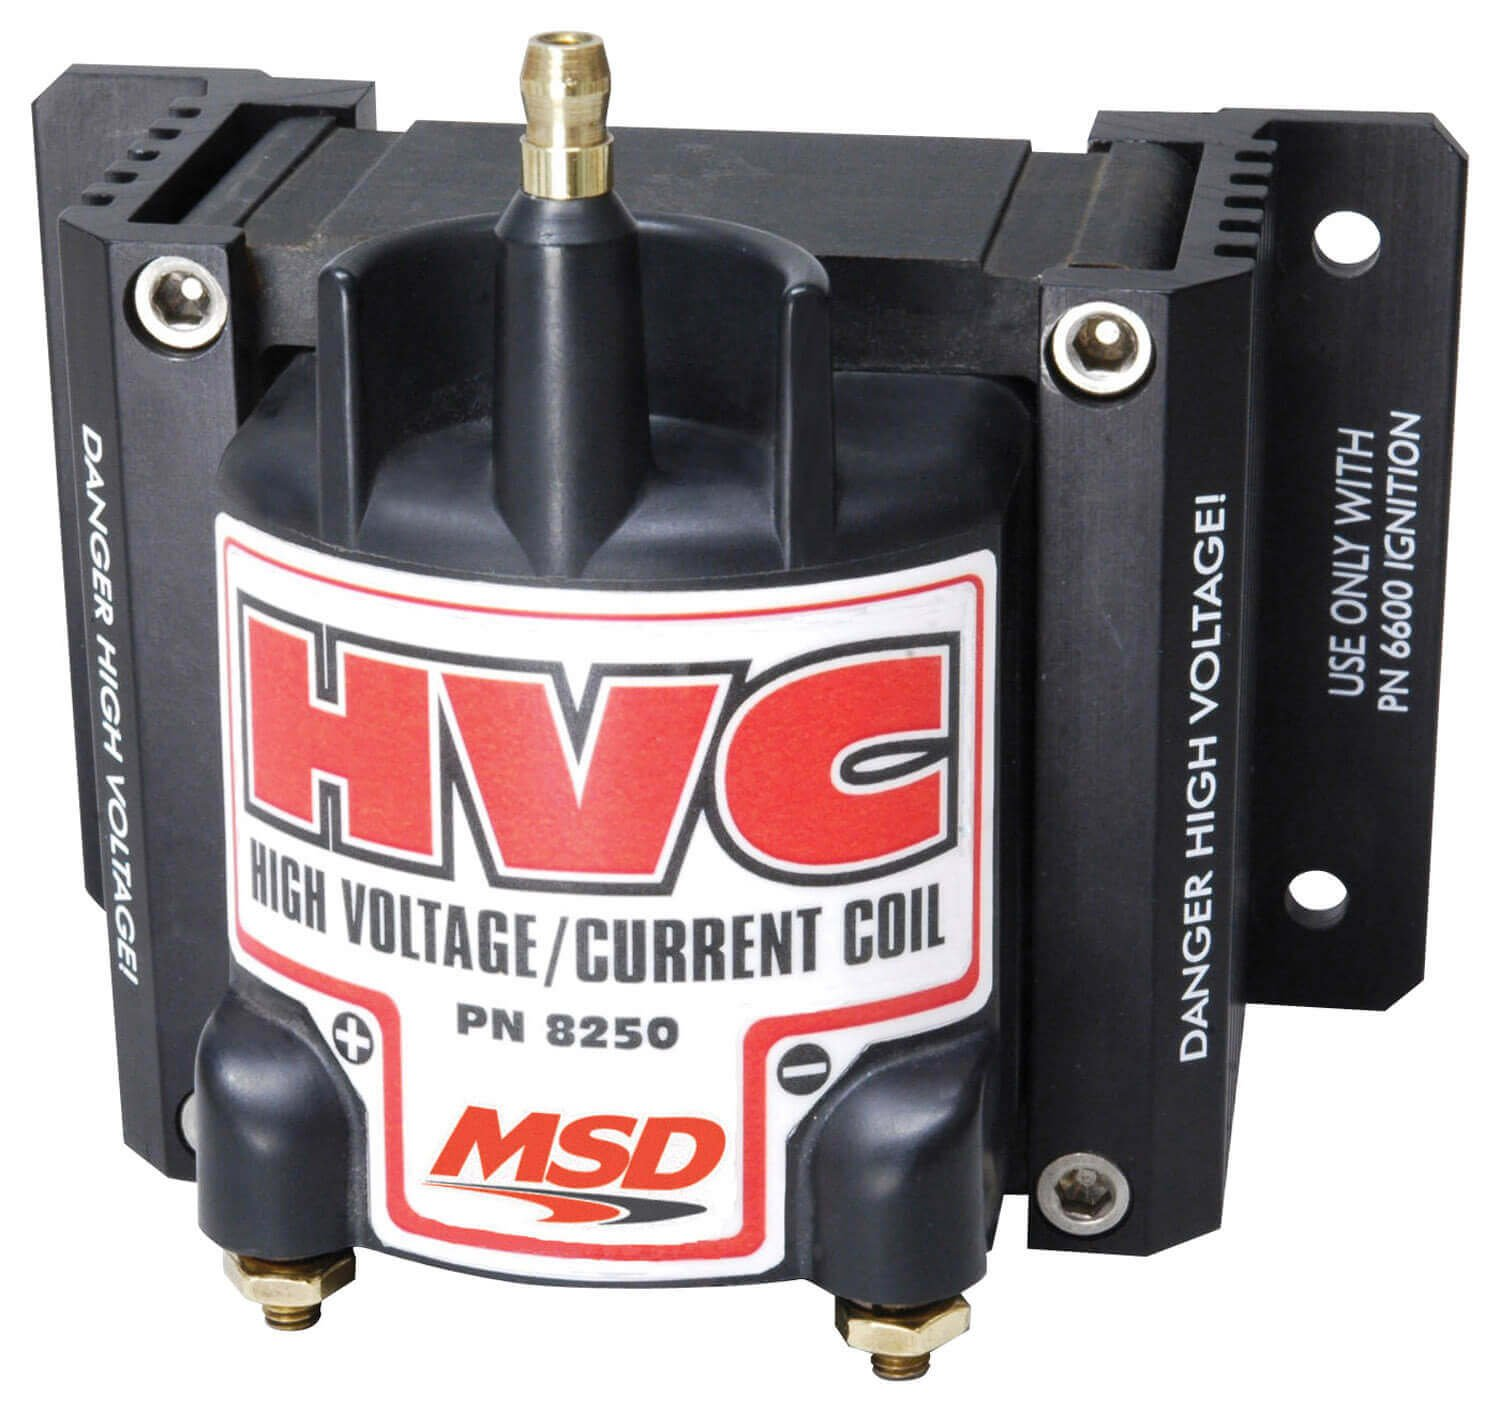 8250 - MSD 6 HVC Coil Image